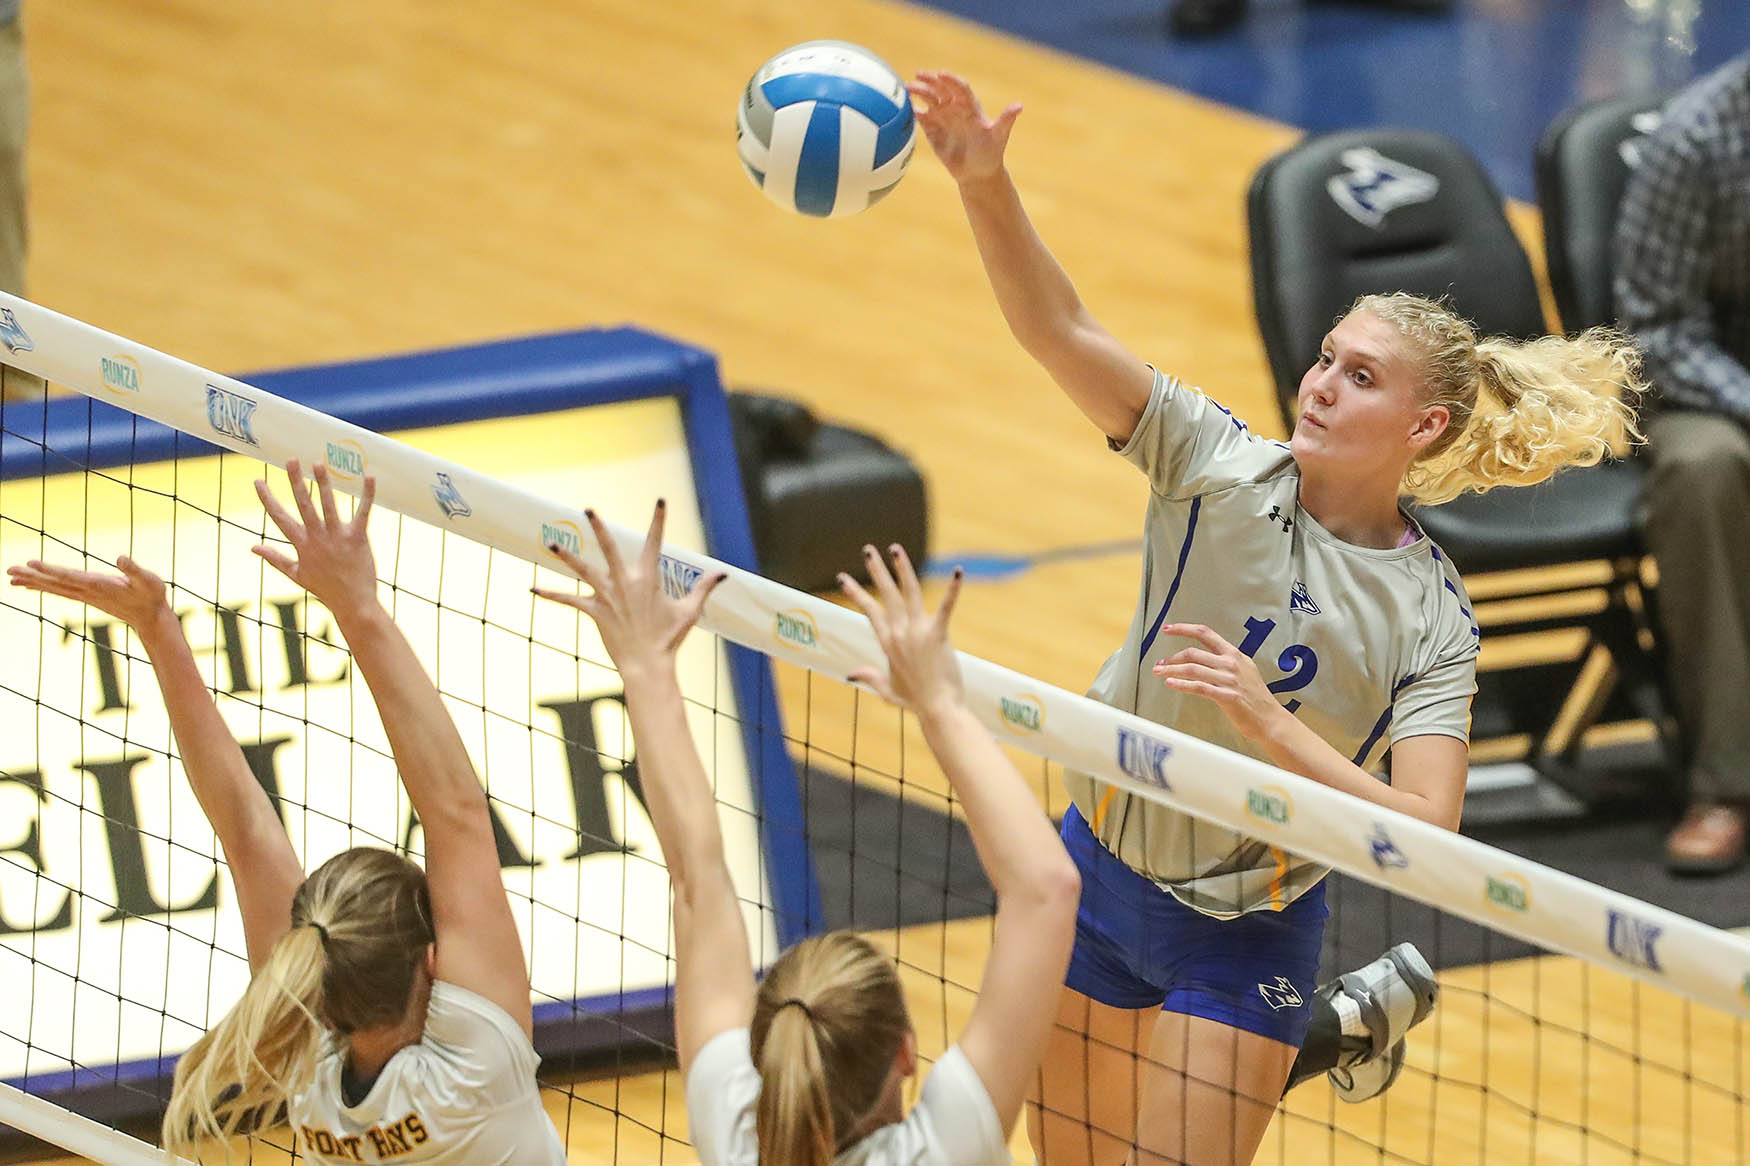 Senior middle blocker Mackenzie Puckett (12) is part of a UNK volleyball team that's posted a 125-9 record over the past four seasons and reached the NCAA Division II national tournament three times. (Photos by Corbey R. Dorsey, UNK Communications)